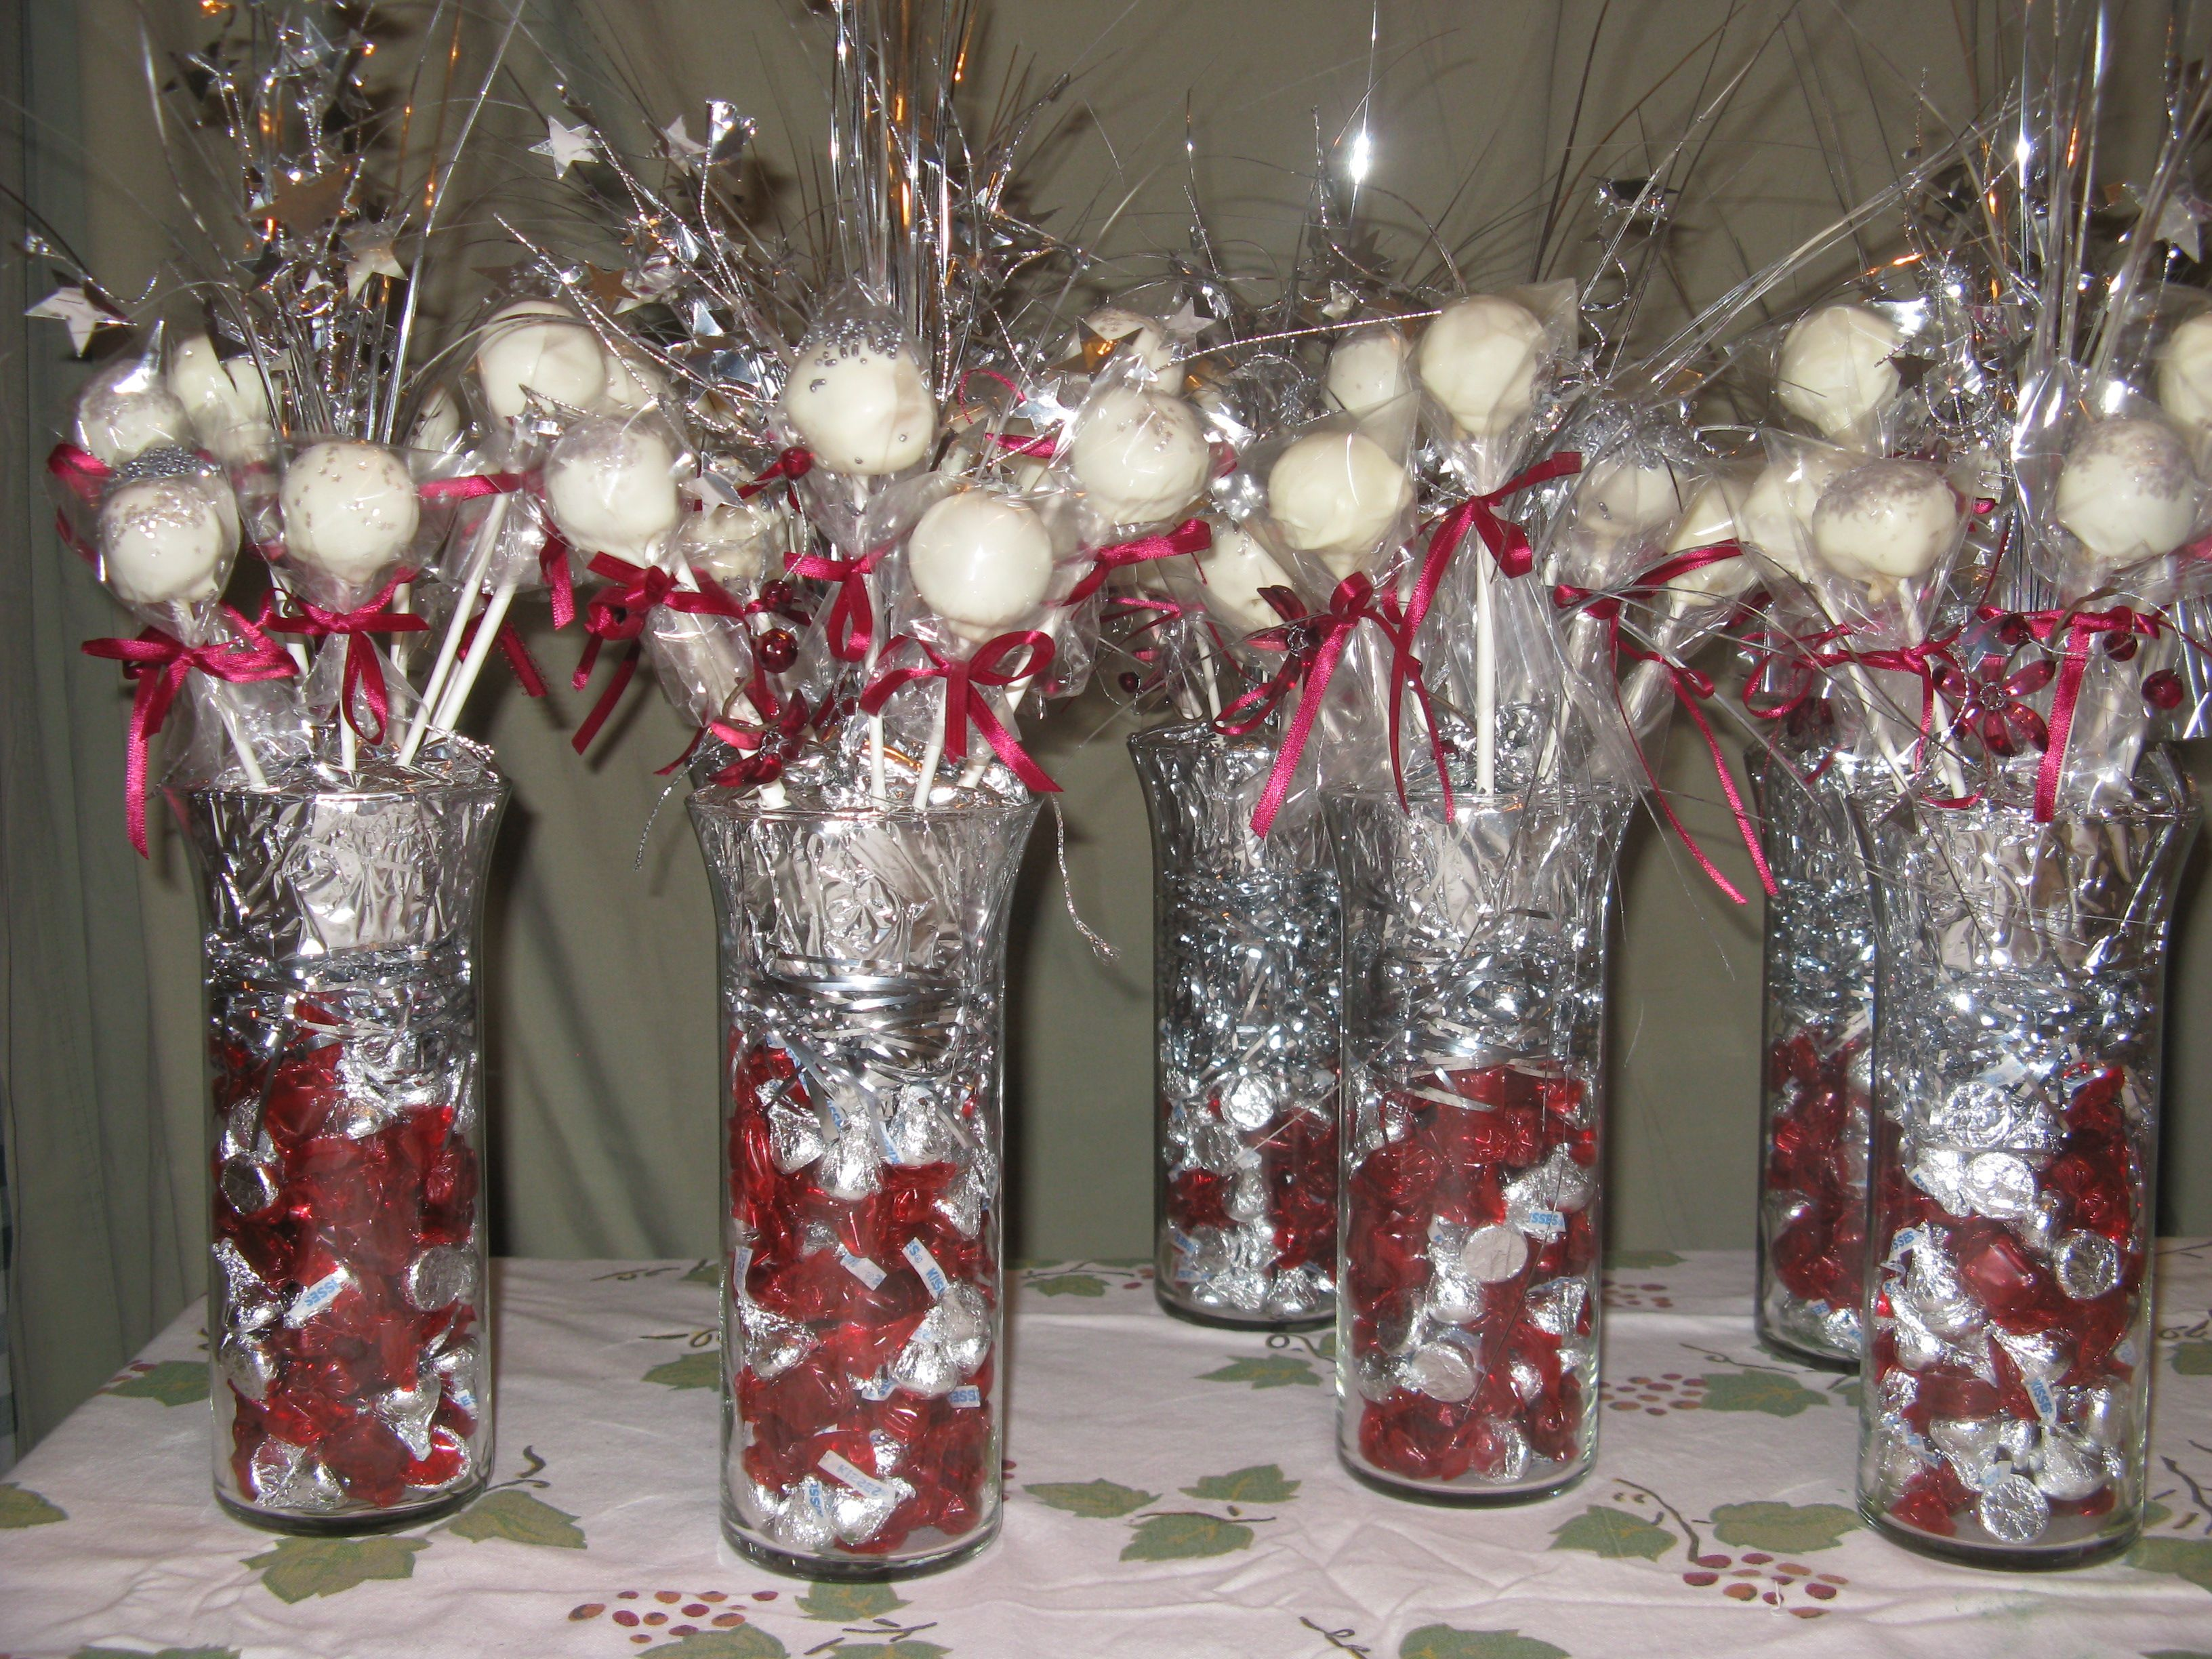 Sha volleyball banquet cake pops pinterest for Athletic banquet decoration ideas